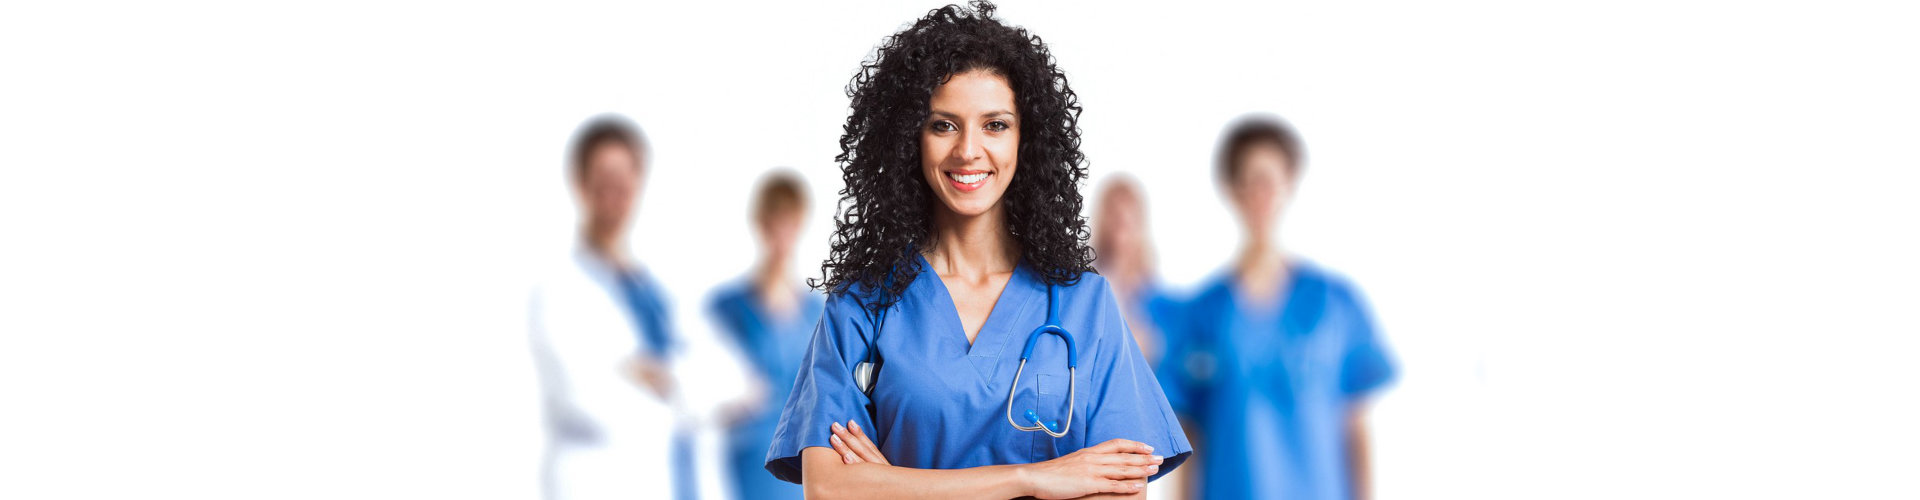 a nurse with a curly hair smiling